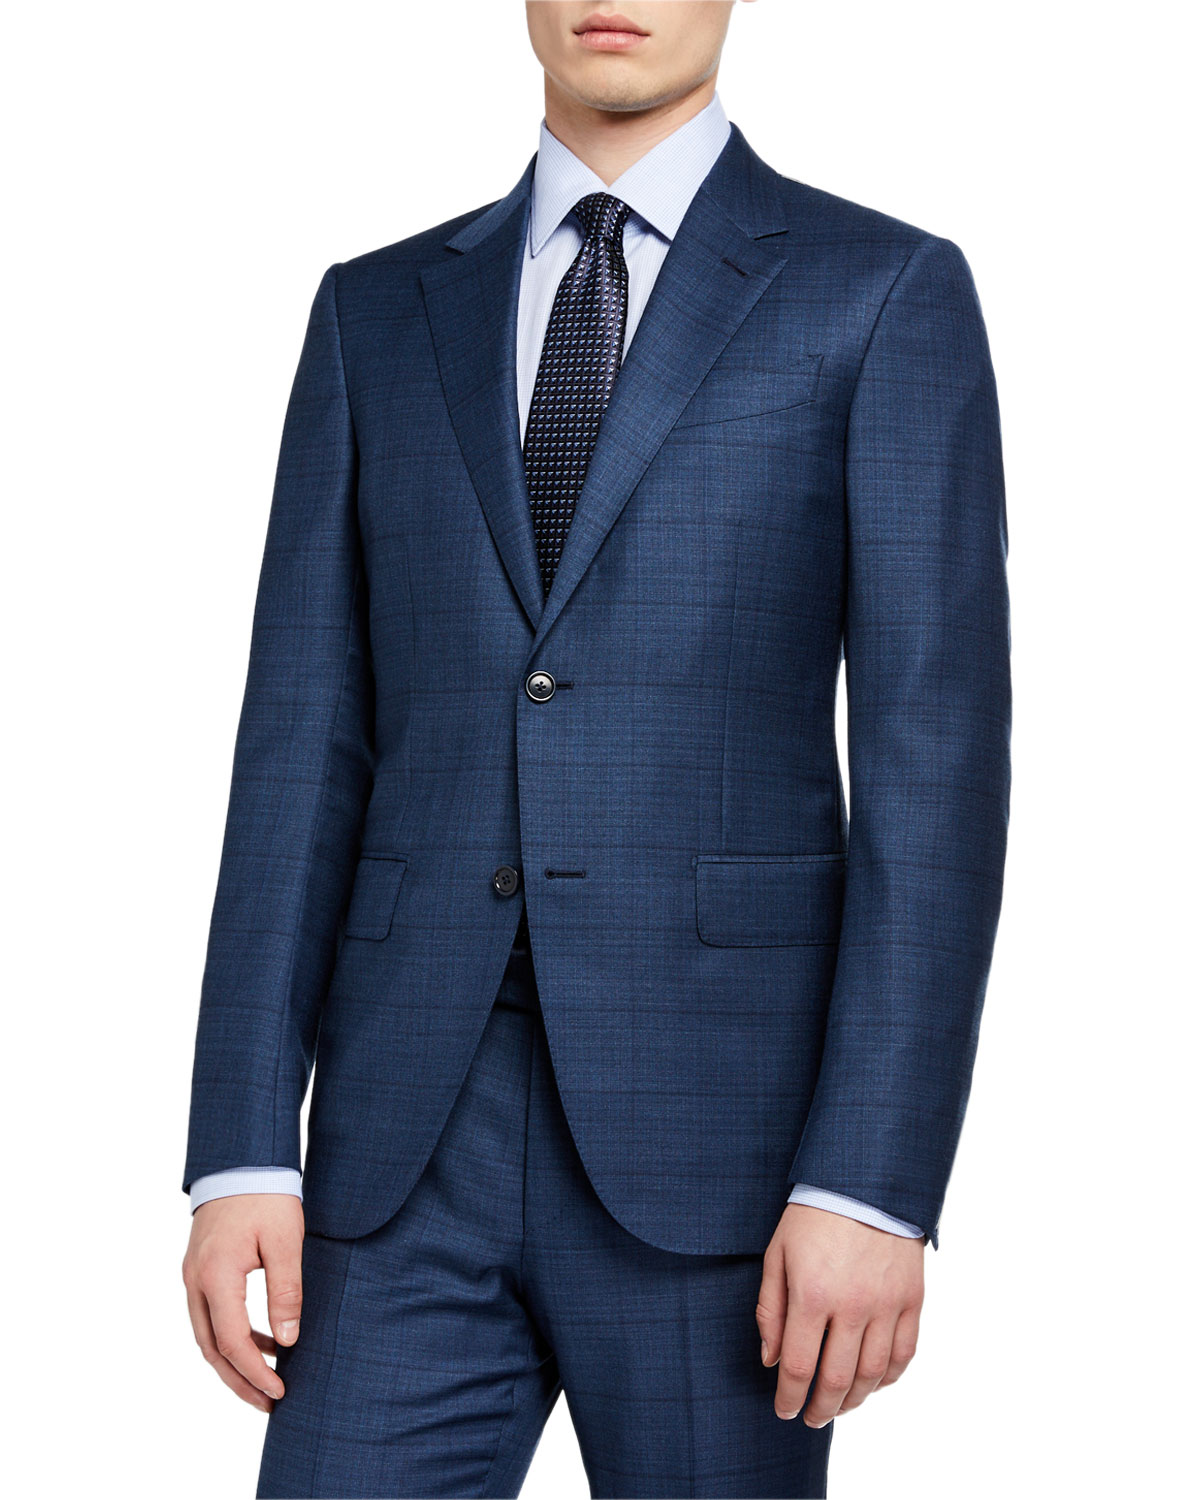 Ermenegildo Zegna Suits MEN'S WINDOWPANE WOOL/SILK TWO-PIECE SUIT, BLUE